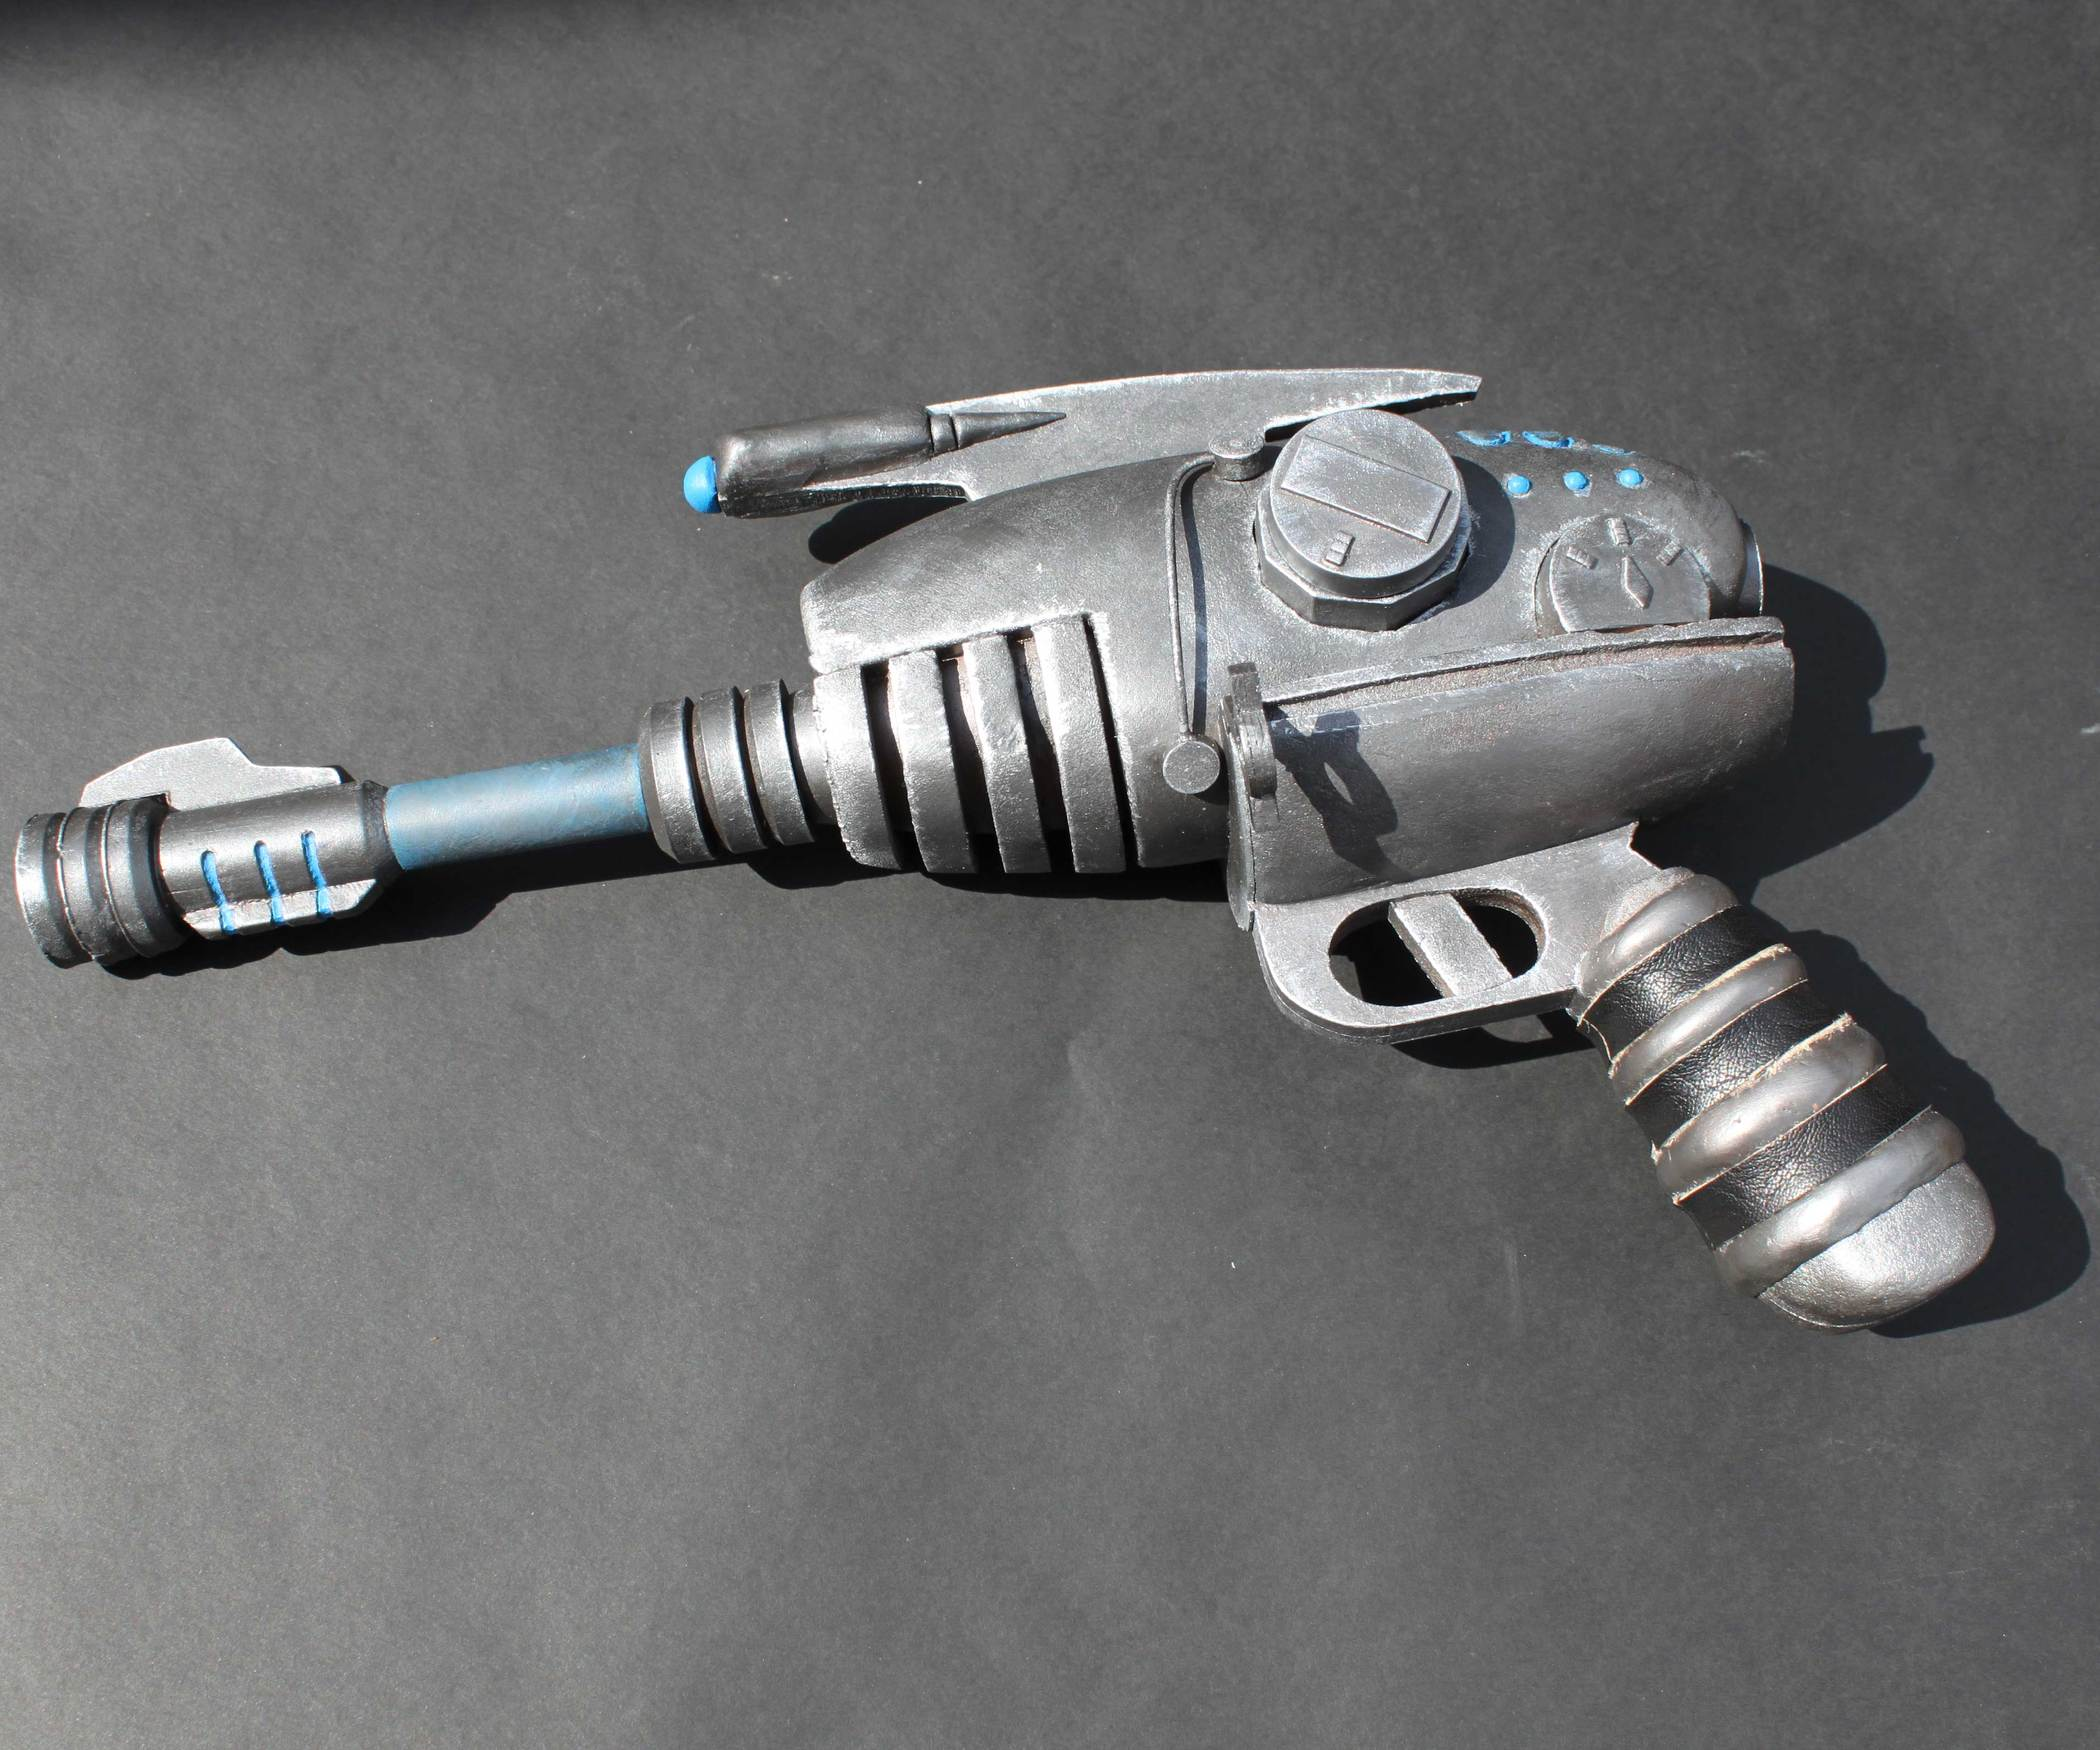 Top 10 3D Printed Video Game Guns - Gambody, 3D Printing Blog